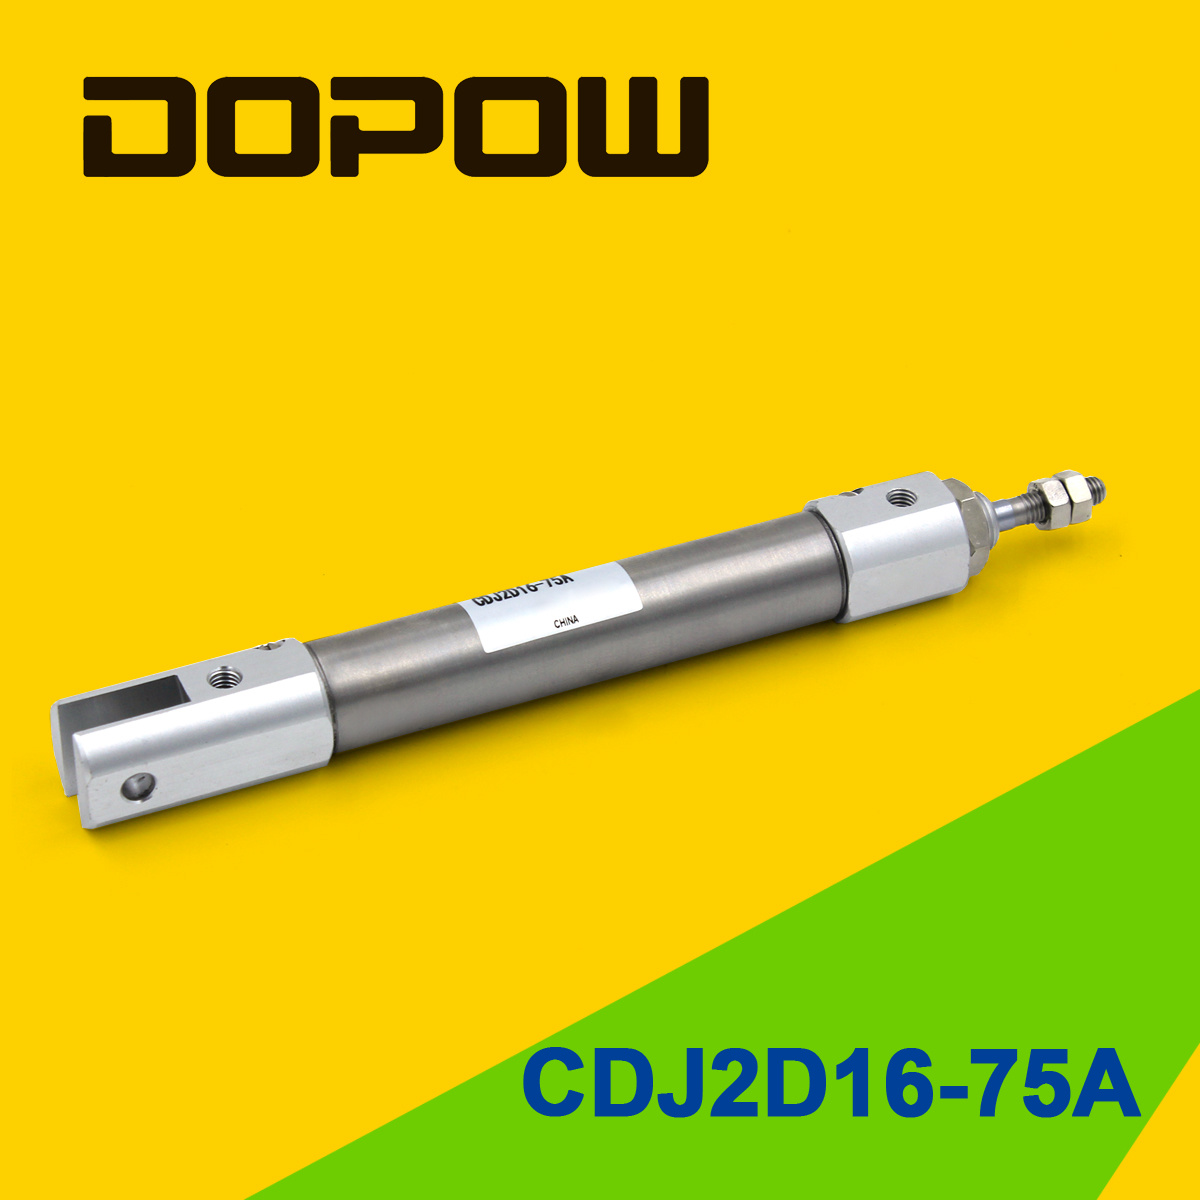 Dopow CDJ2d16-75A Stainless Mini Air Cylinder